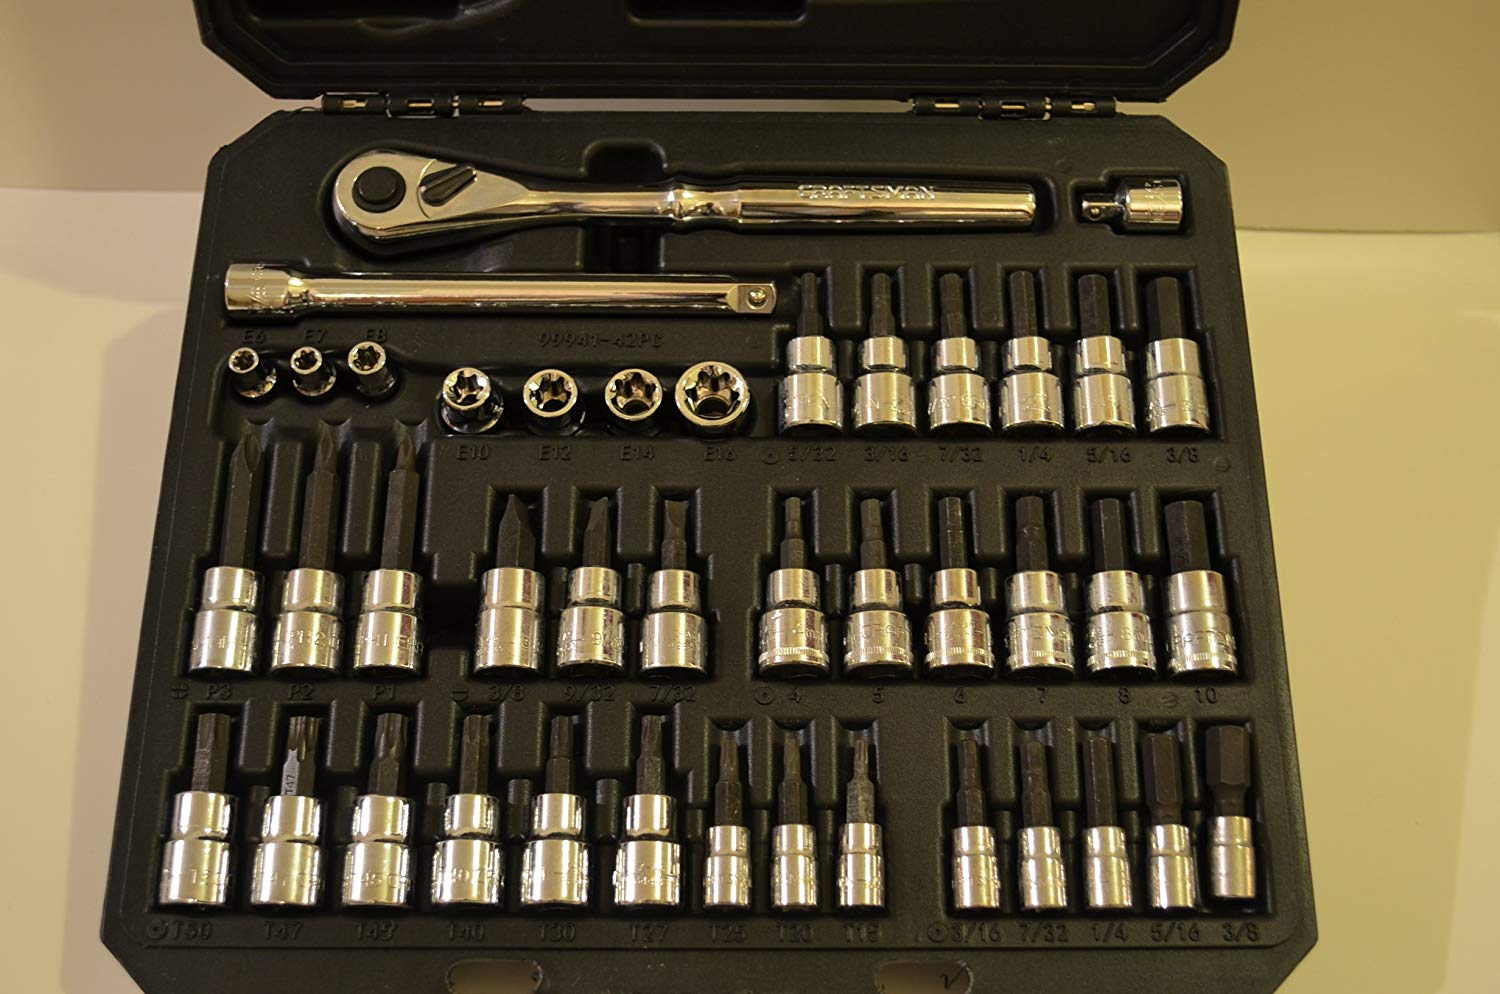 Craftsman 42 piece Drive Bit and Torx Bit Socket Wrench Set with Polished Ratchet